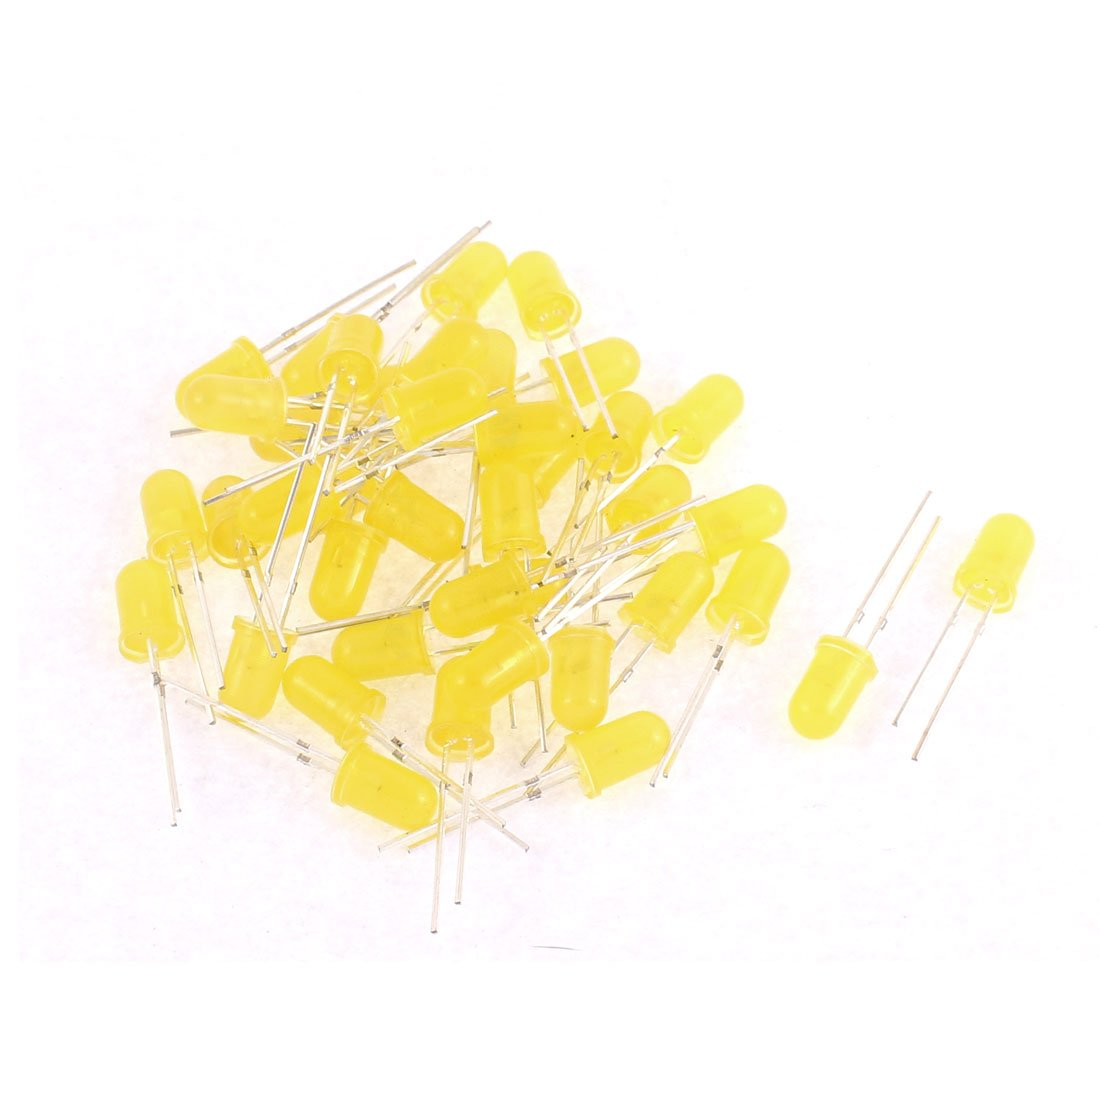 Image result for 5mm Yellow LED Light Emitting Diode